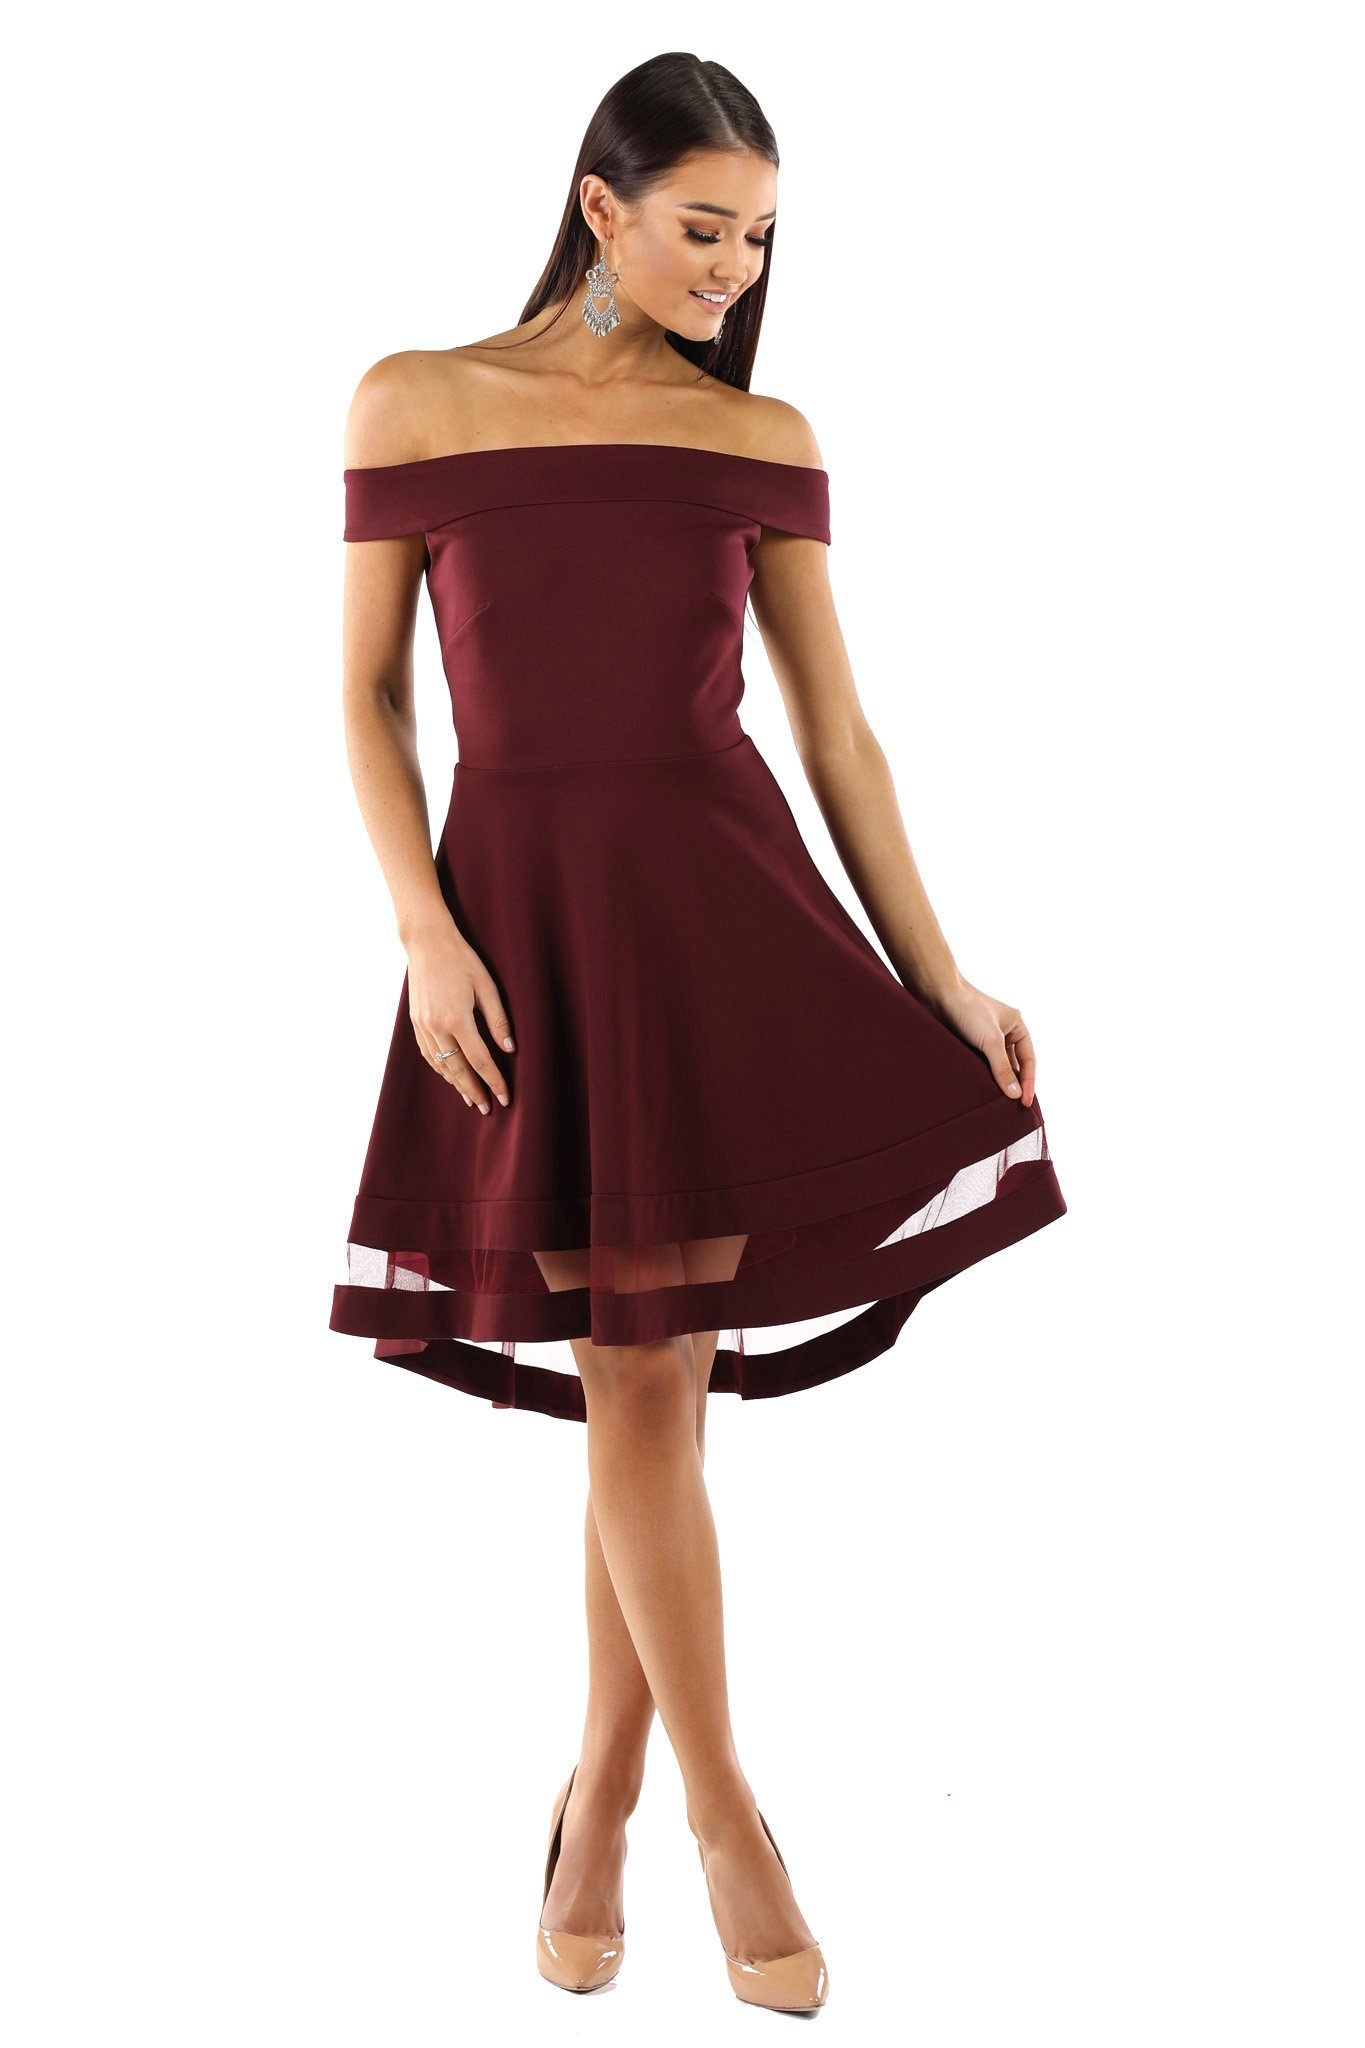 fda43d22d29b Burgundy skater dress with off the shoulder design